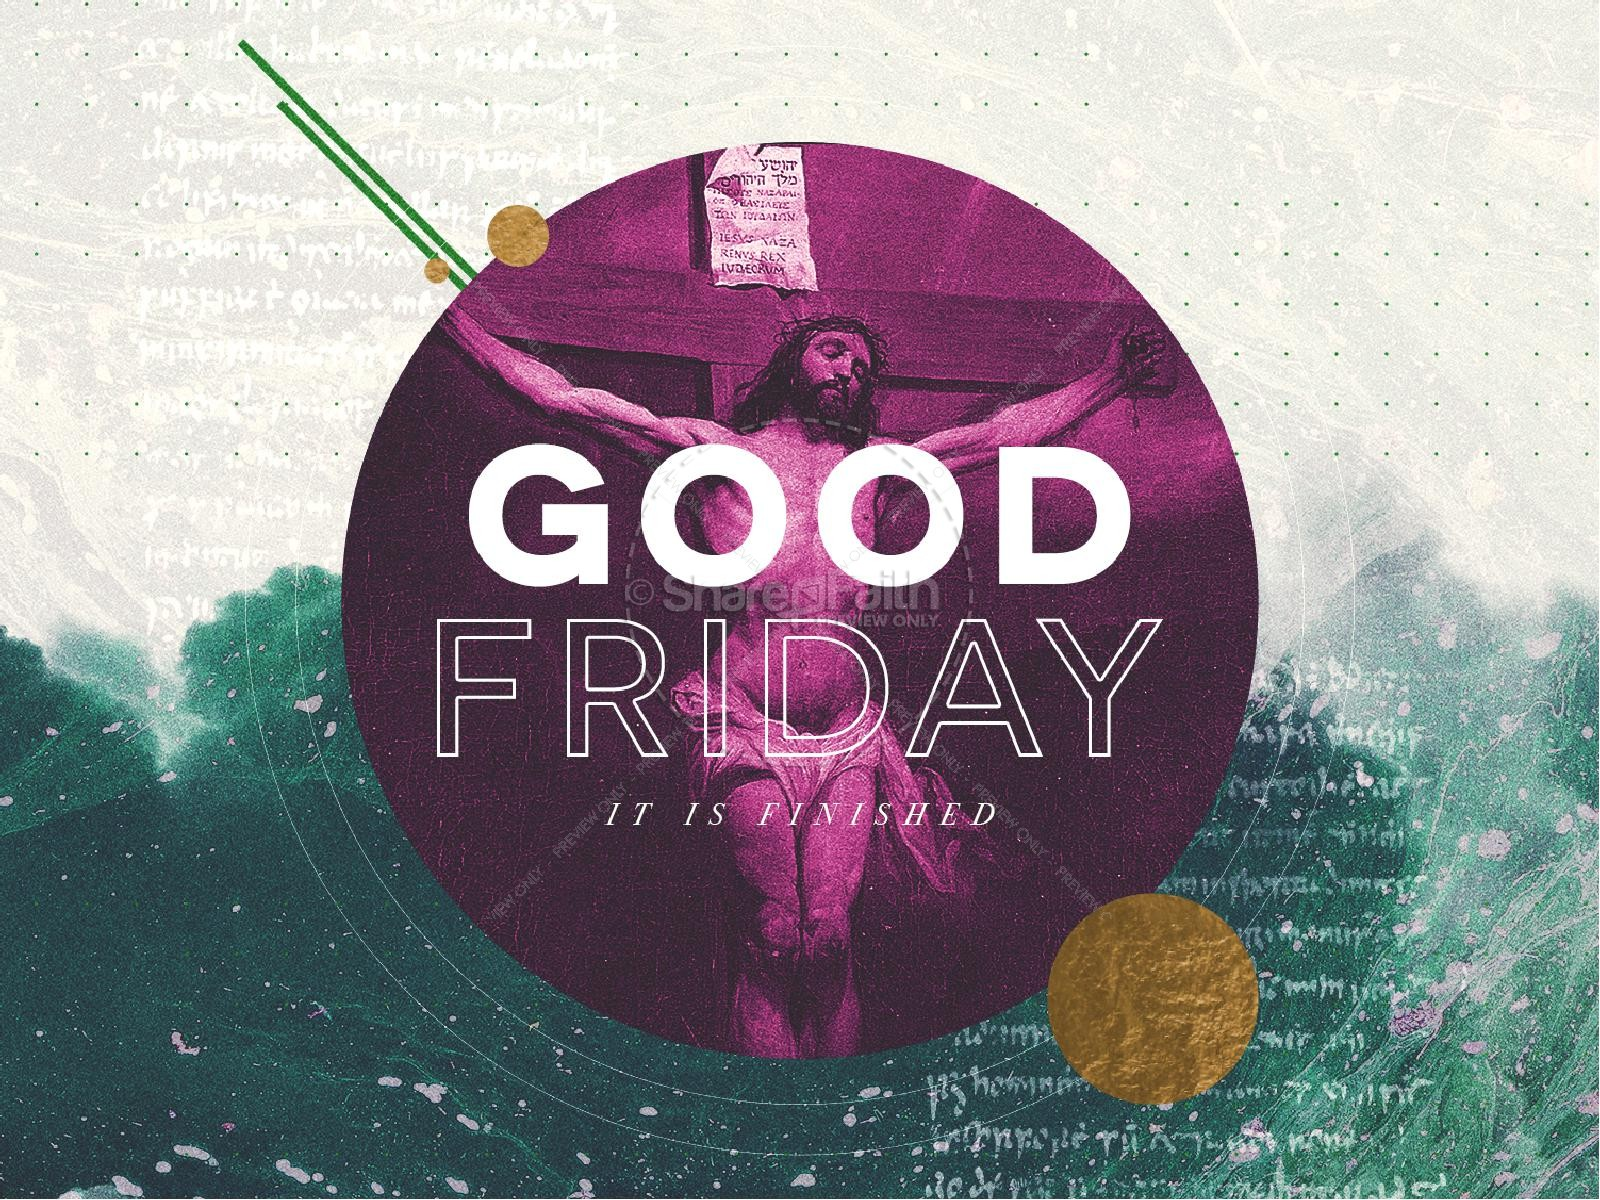 Good Friday Service Graphic Design